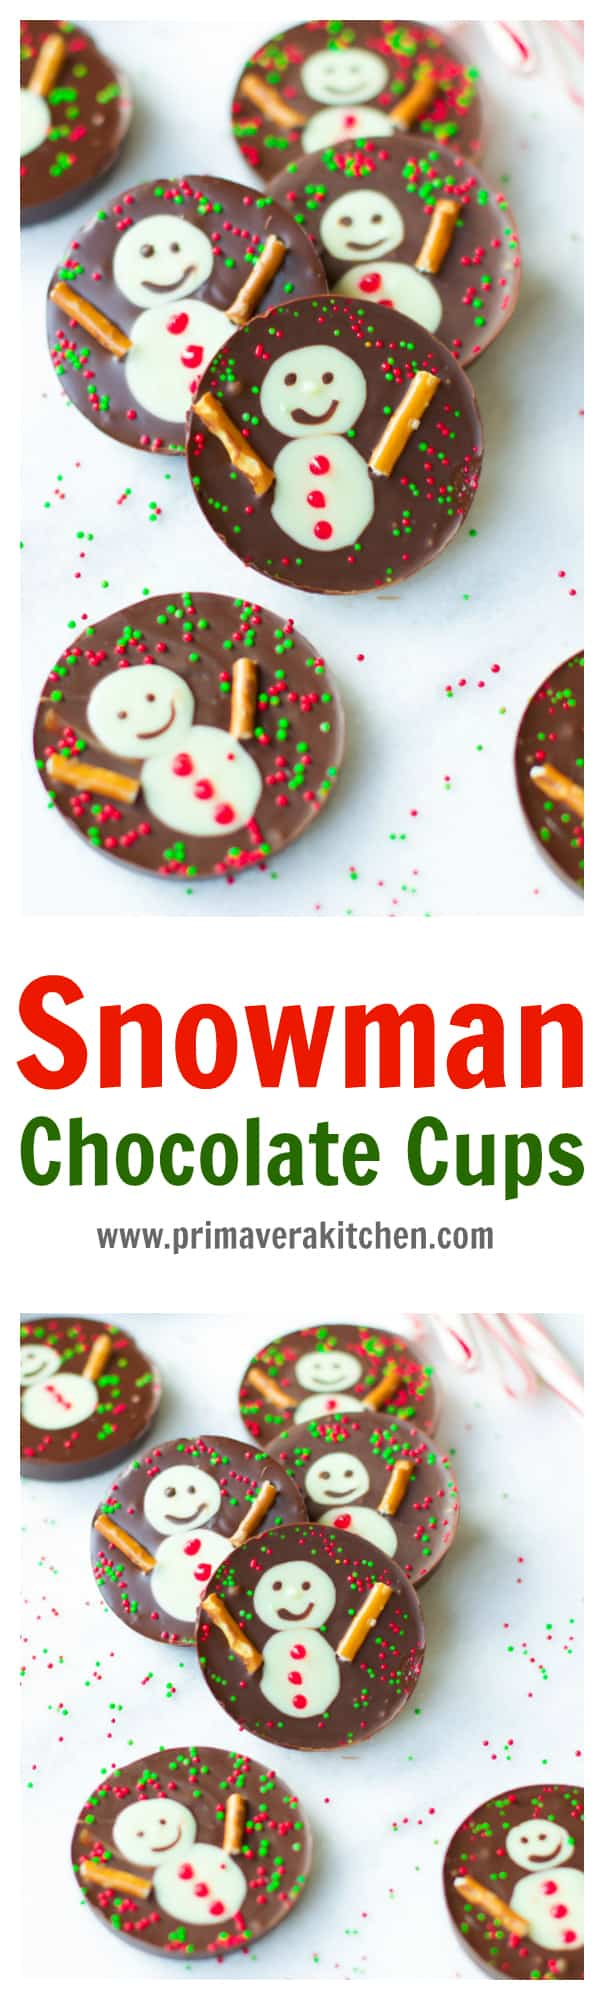 snowman-chocolate-cups- These fun, festive and delicious Snowman Chocolate Cups are the perfect Christmas treats or wintertime snacks! These no-bake chocolate cups are also made with just a hand full of ingredients!